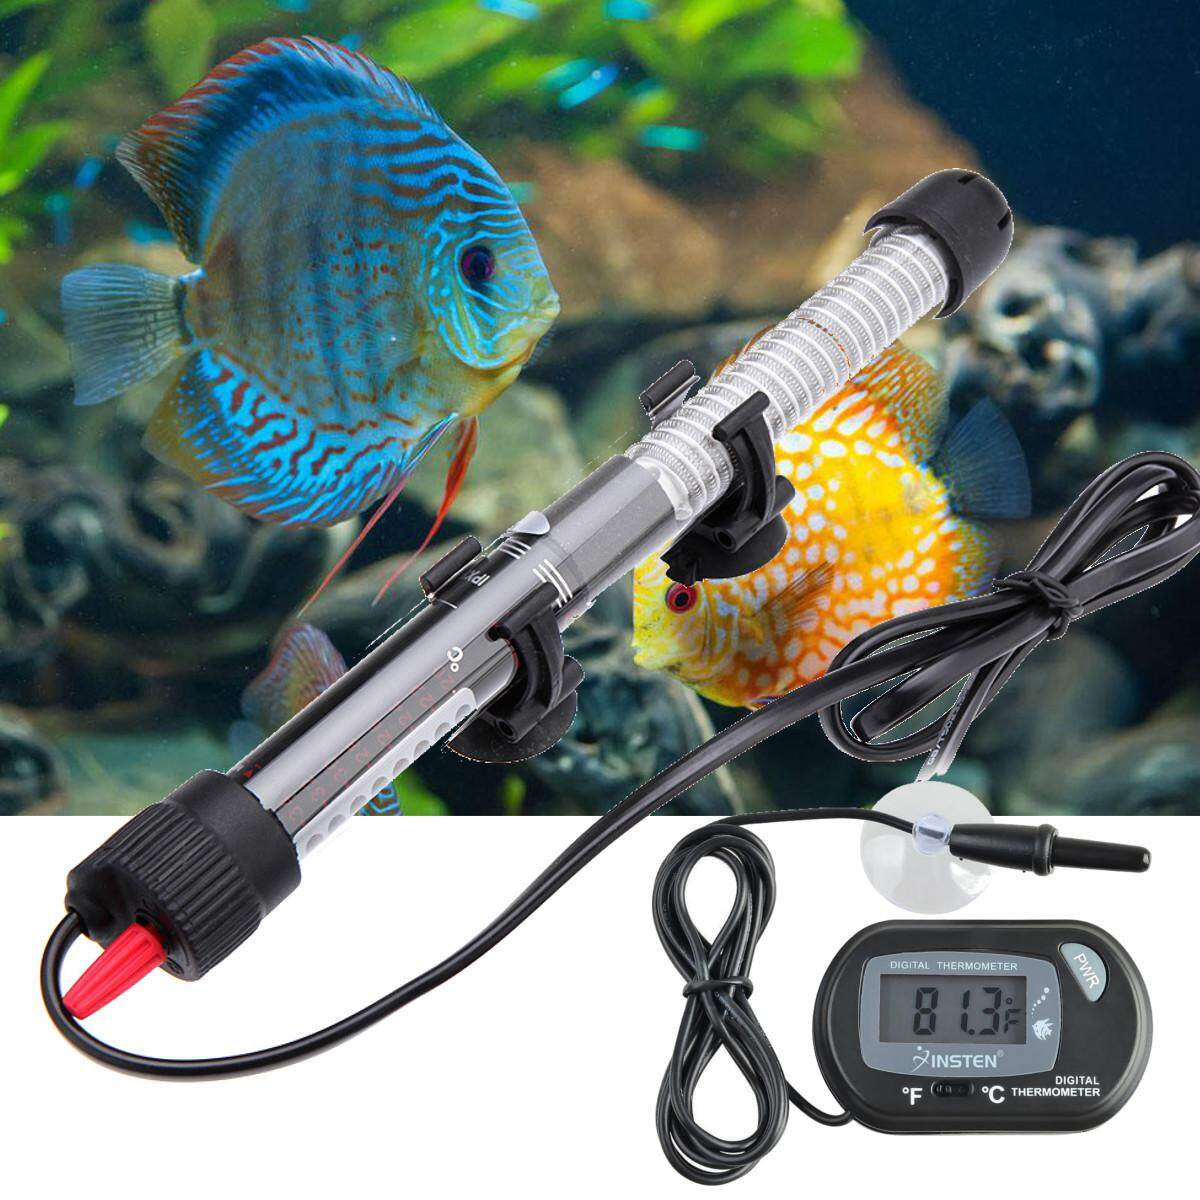 Aquarium Heater Submersible Fish Tank Water + LCD Thermometer # 100W